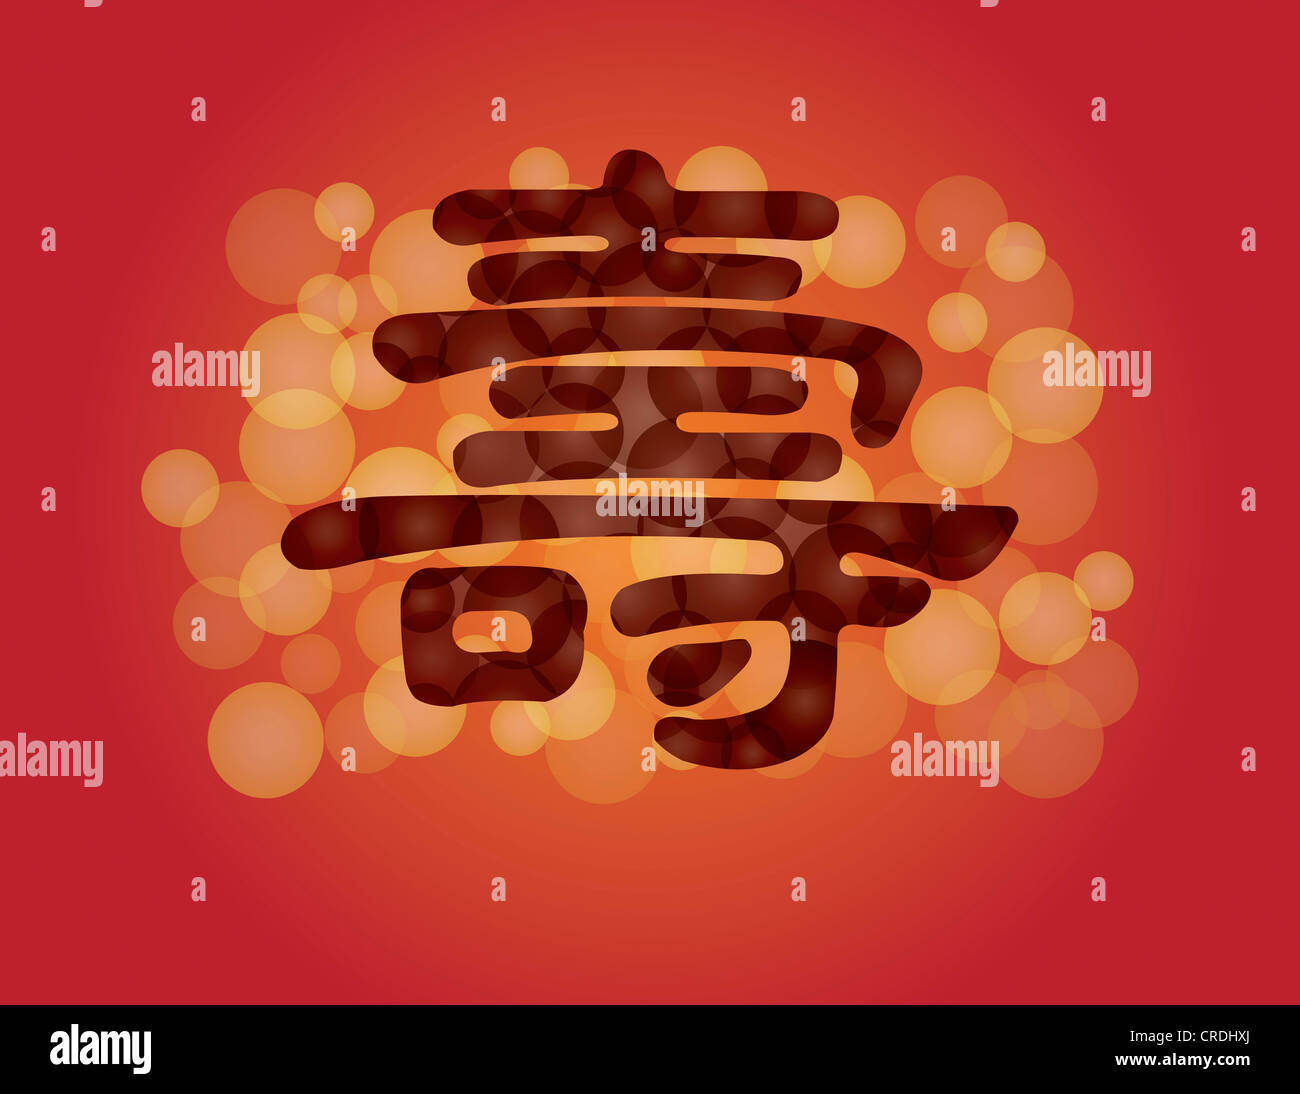 Chinese Longevity Text Symbol With Eternity Circle Pattern Stock